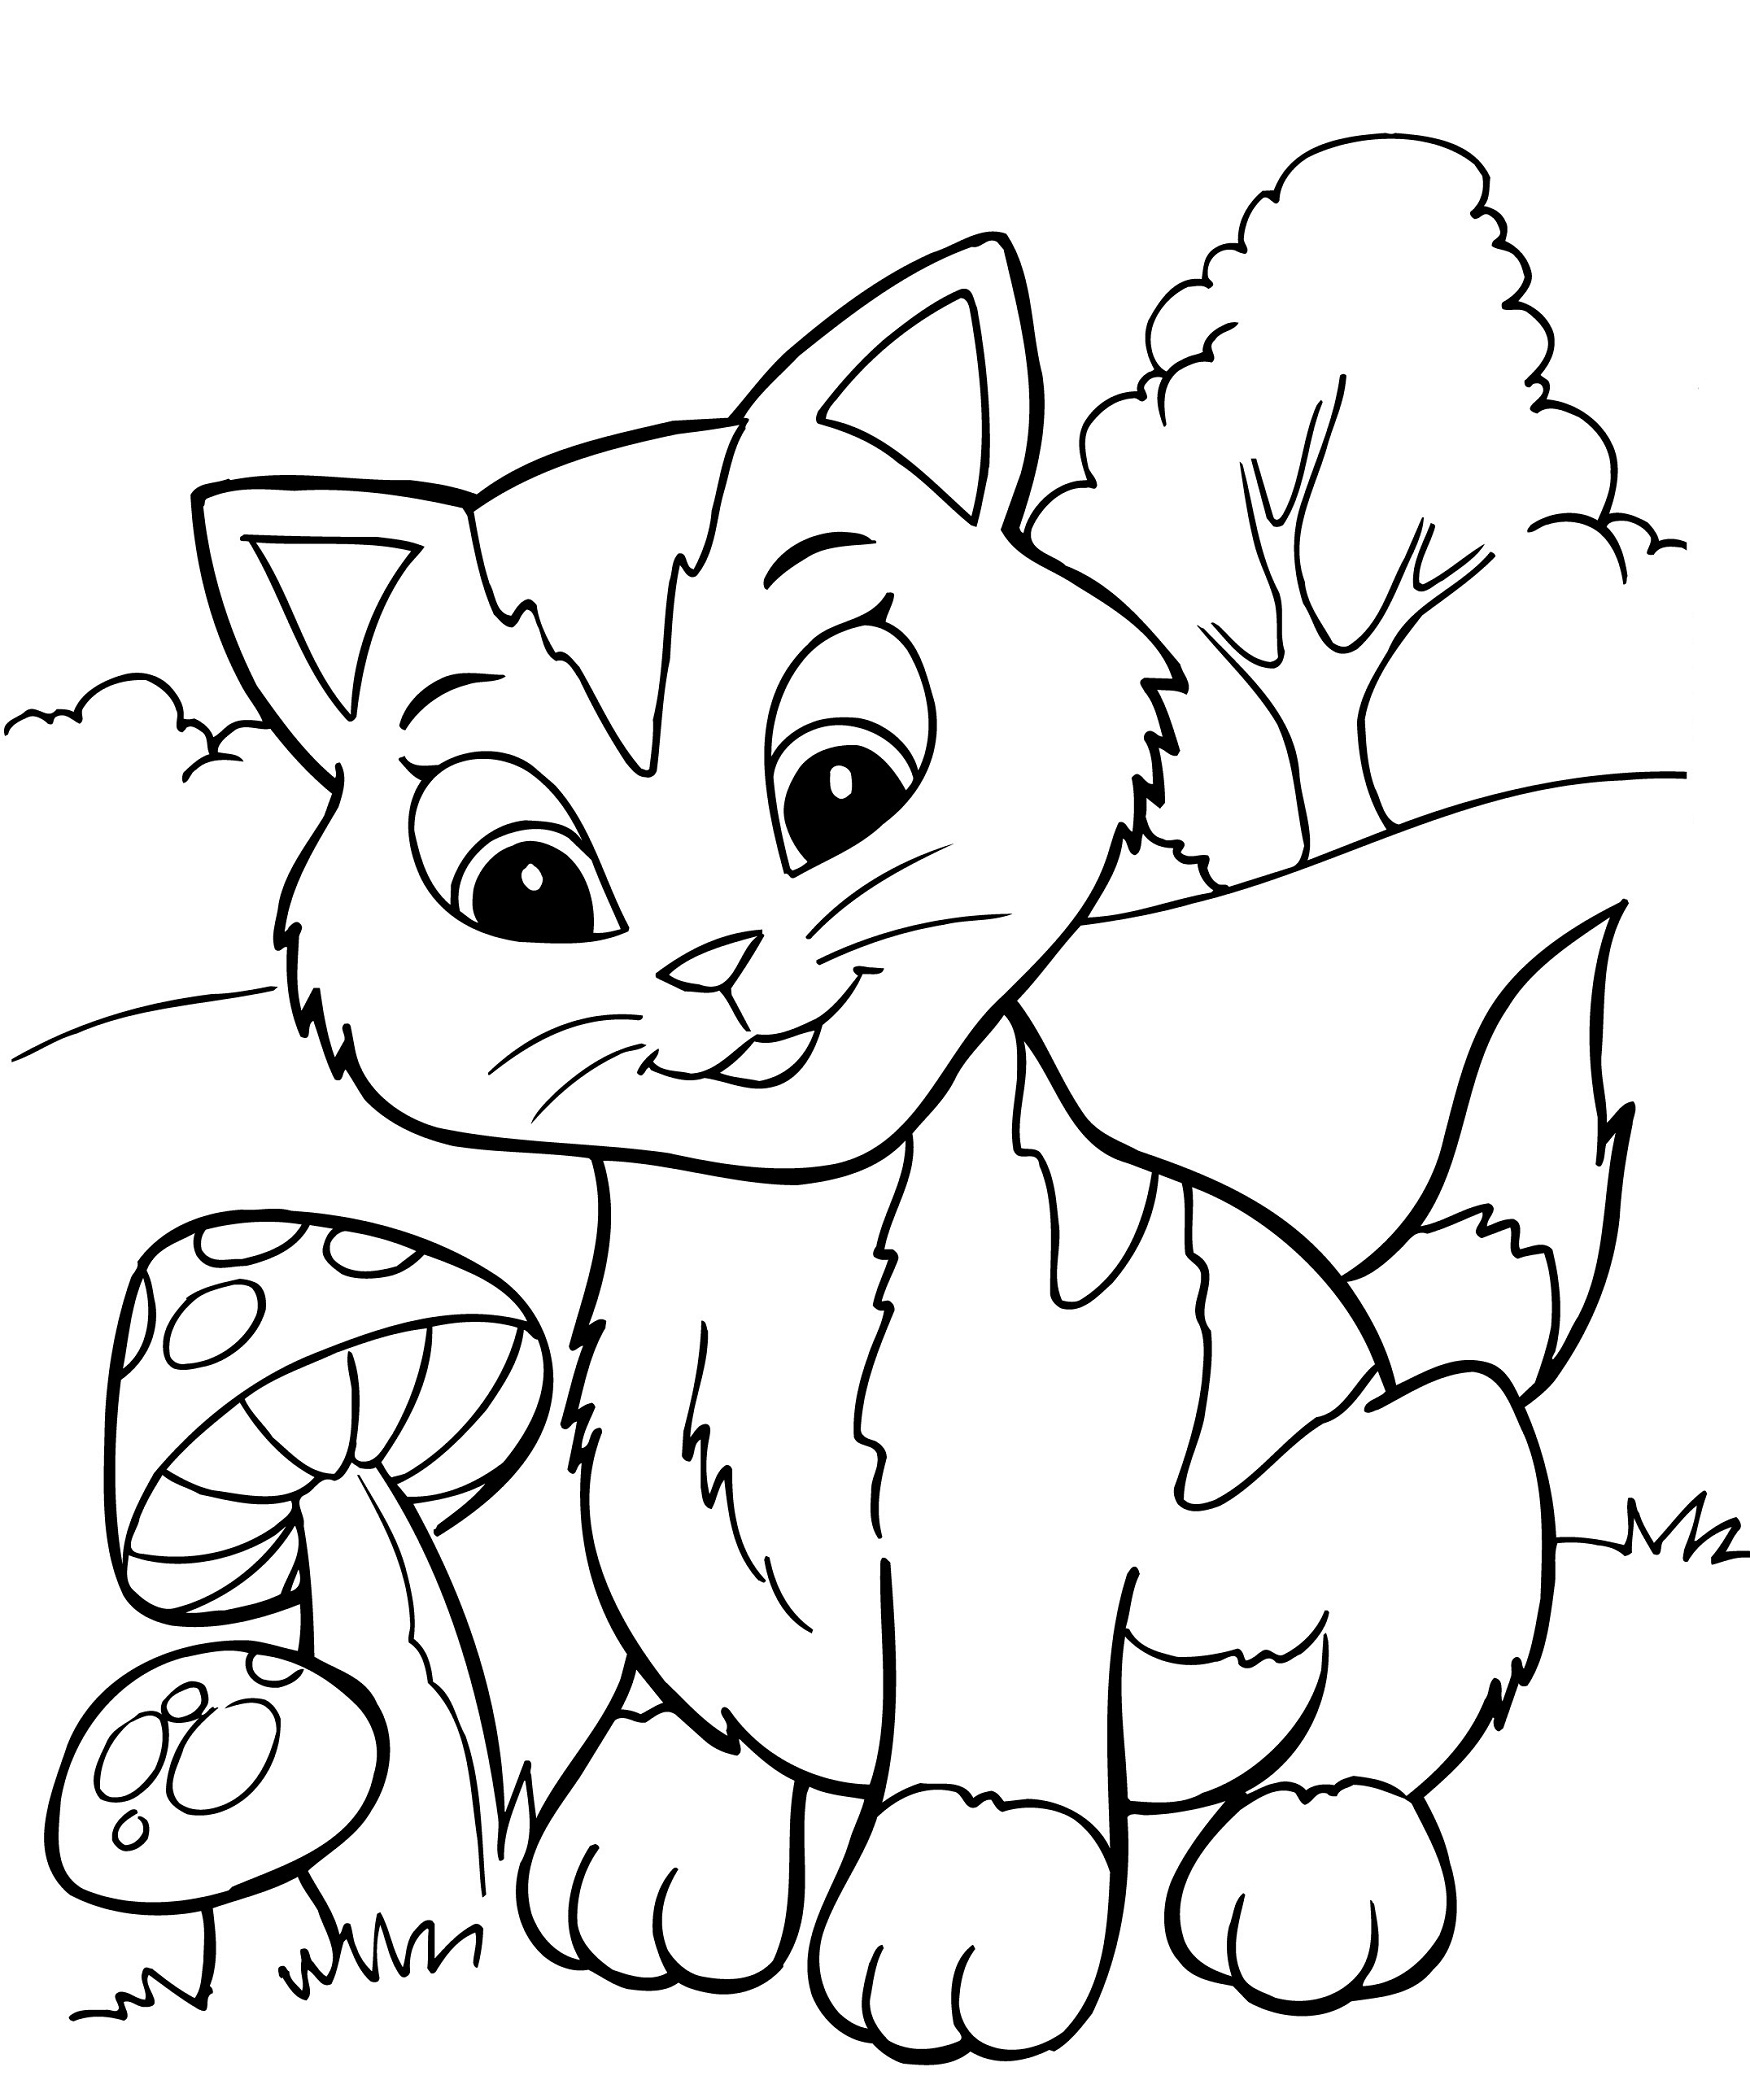 Printable coloring book pages for kids gallery free for Coloring book pages for toddlers